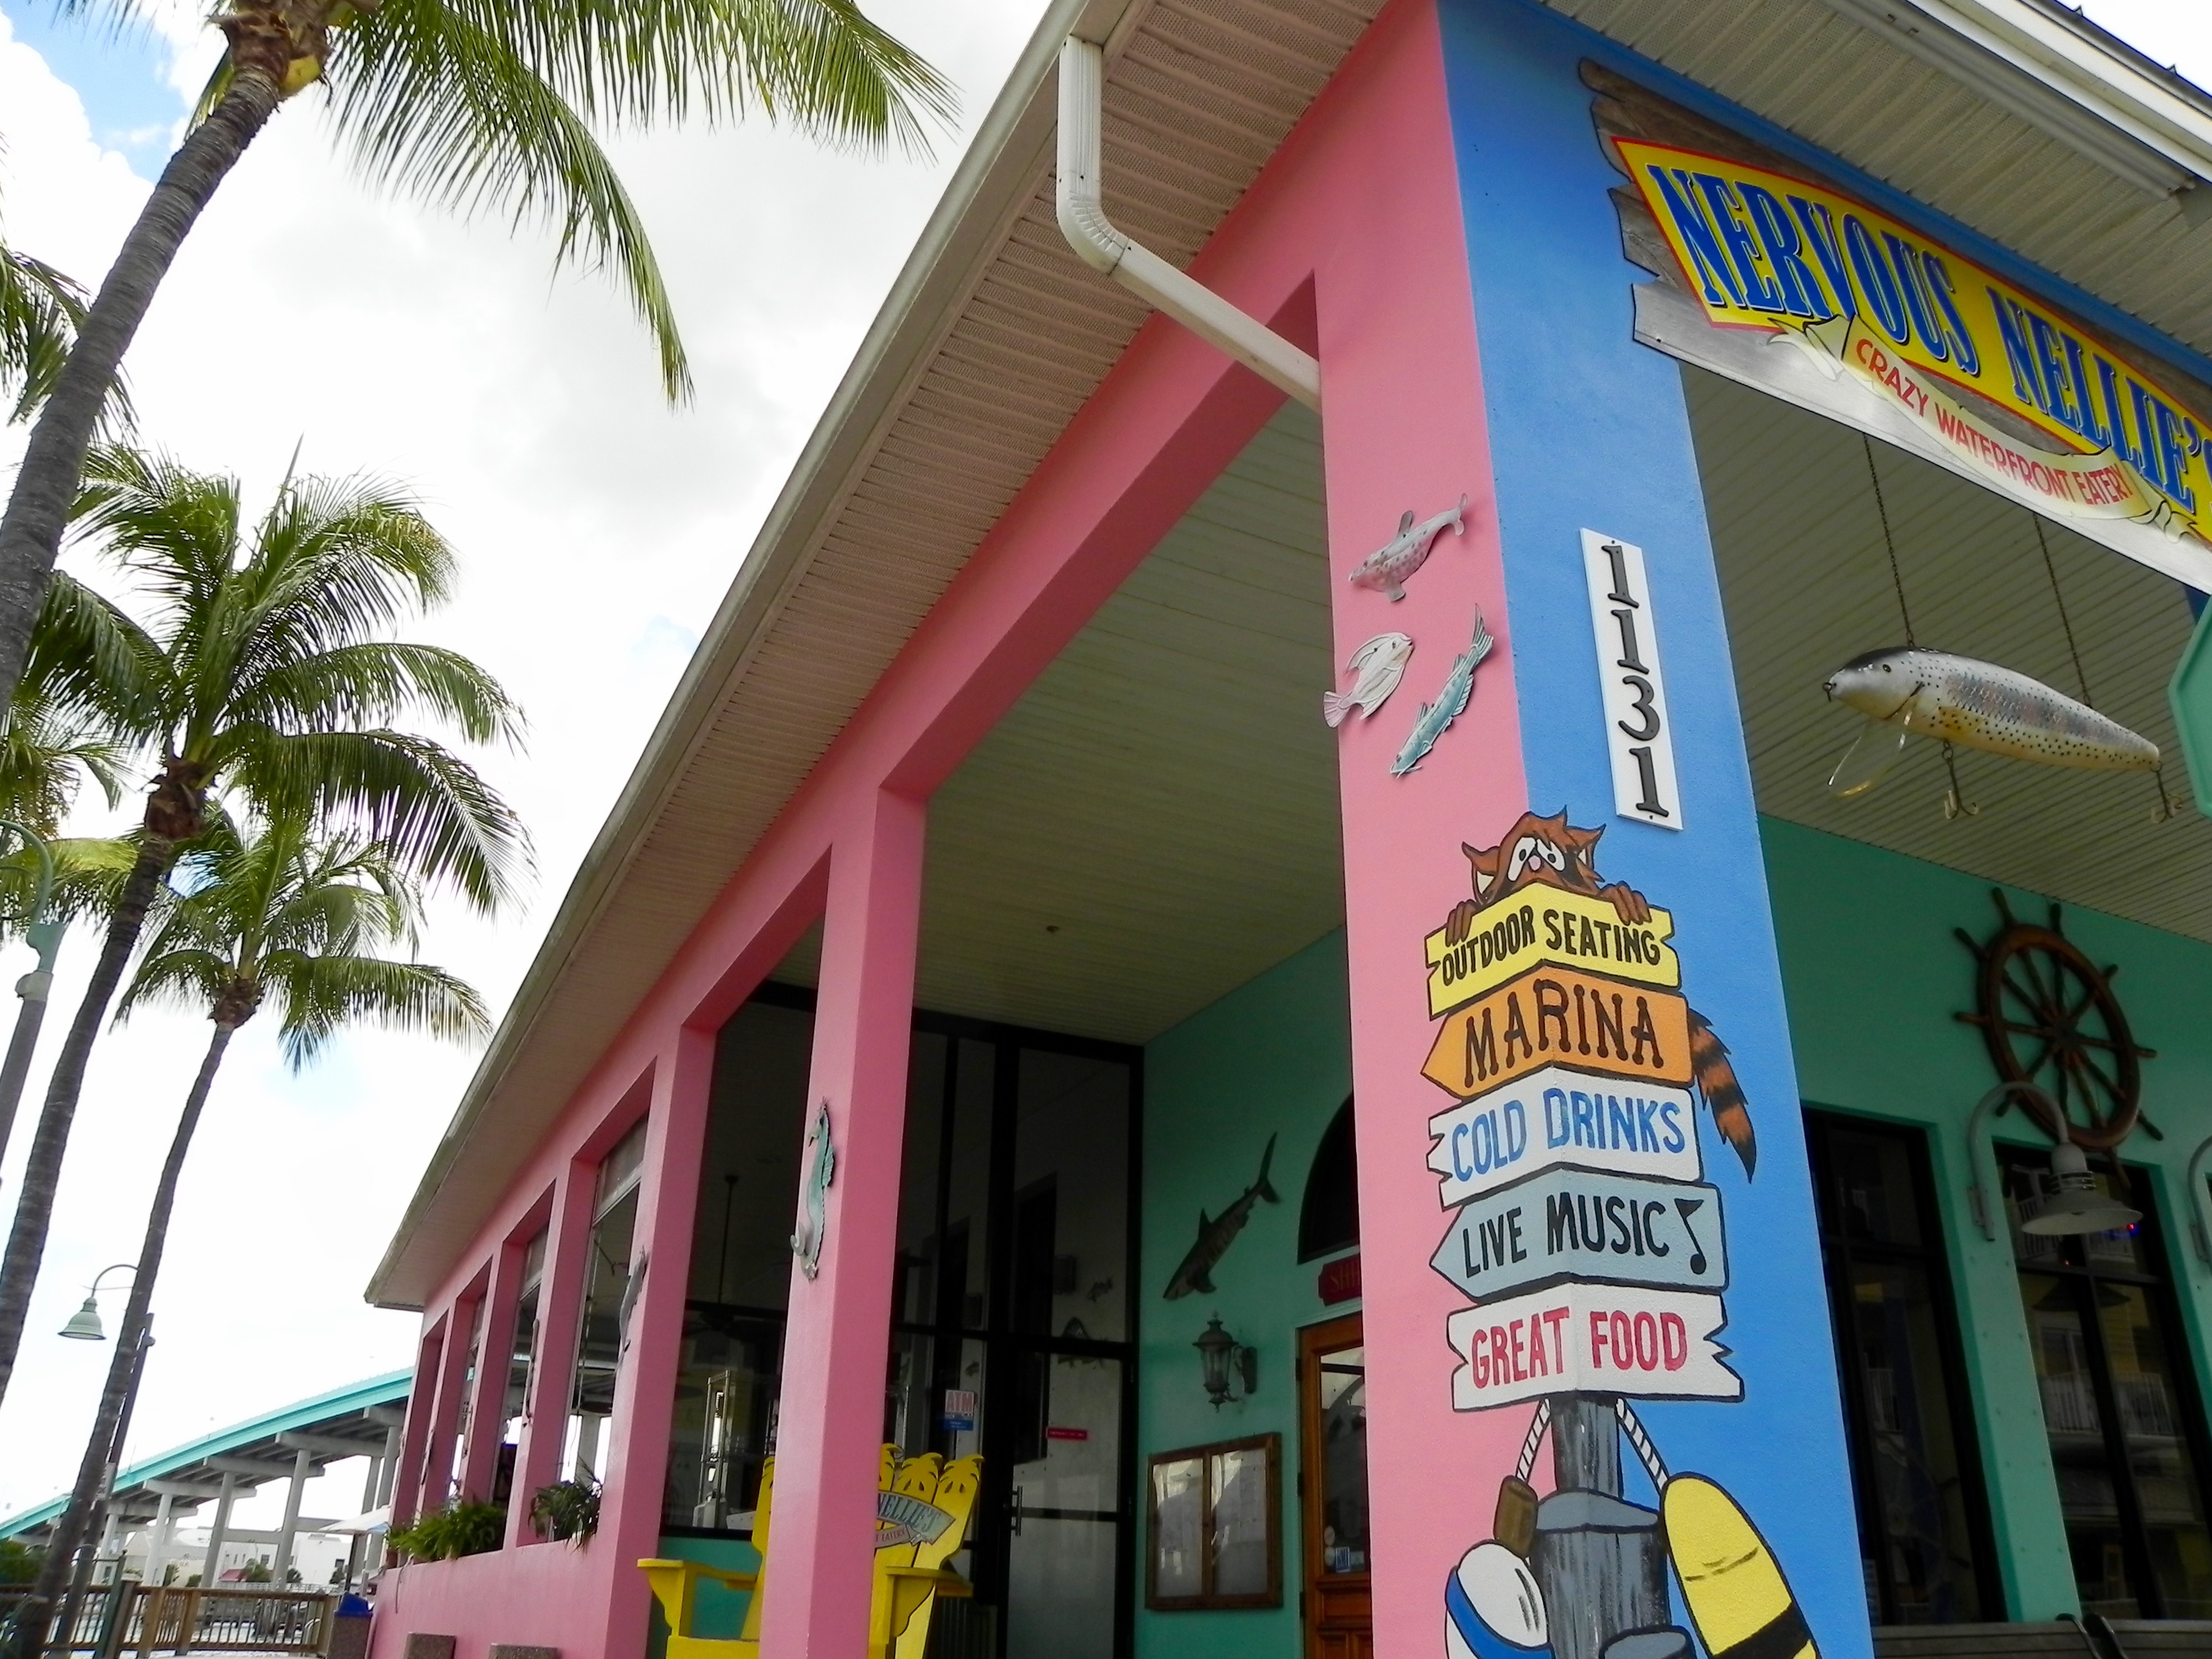 A colorful storefront property on Fort Myers Beach, Florida